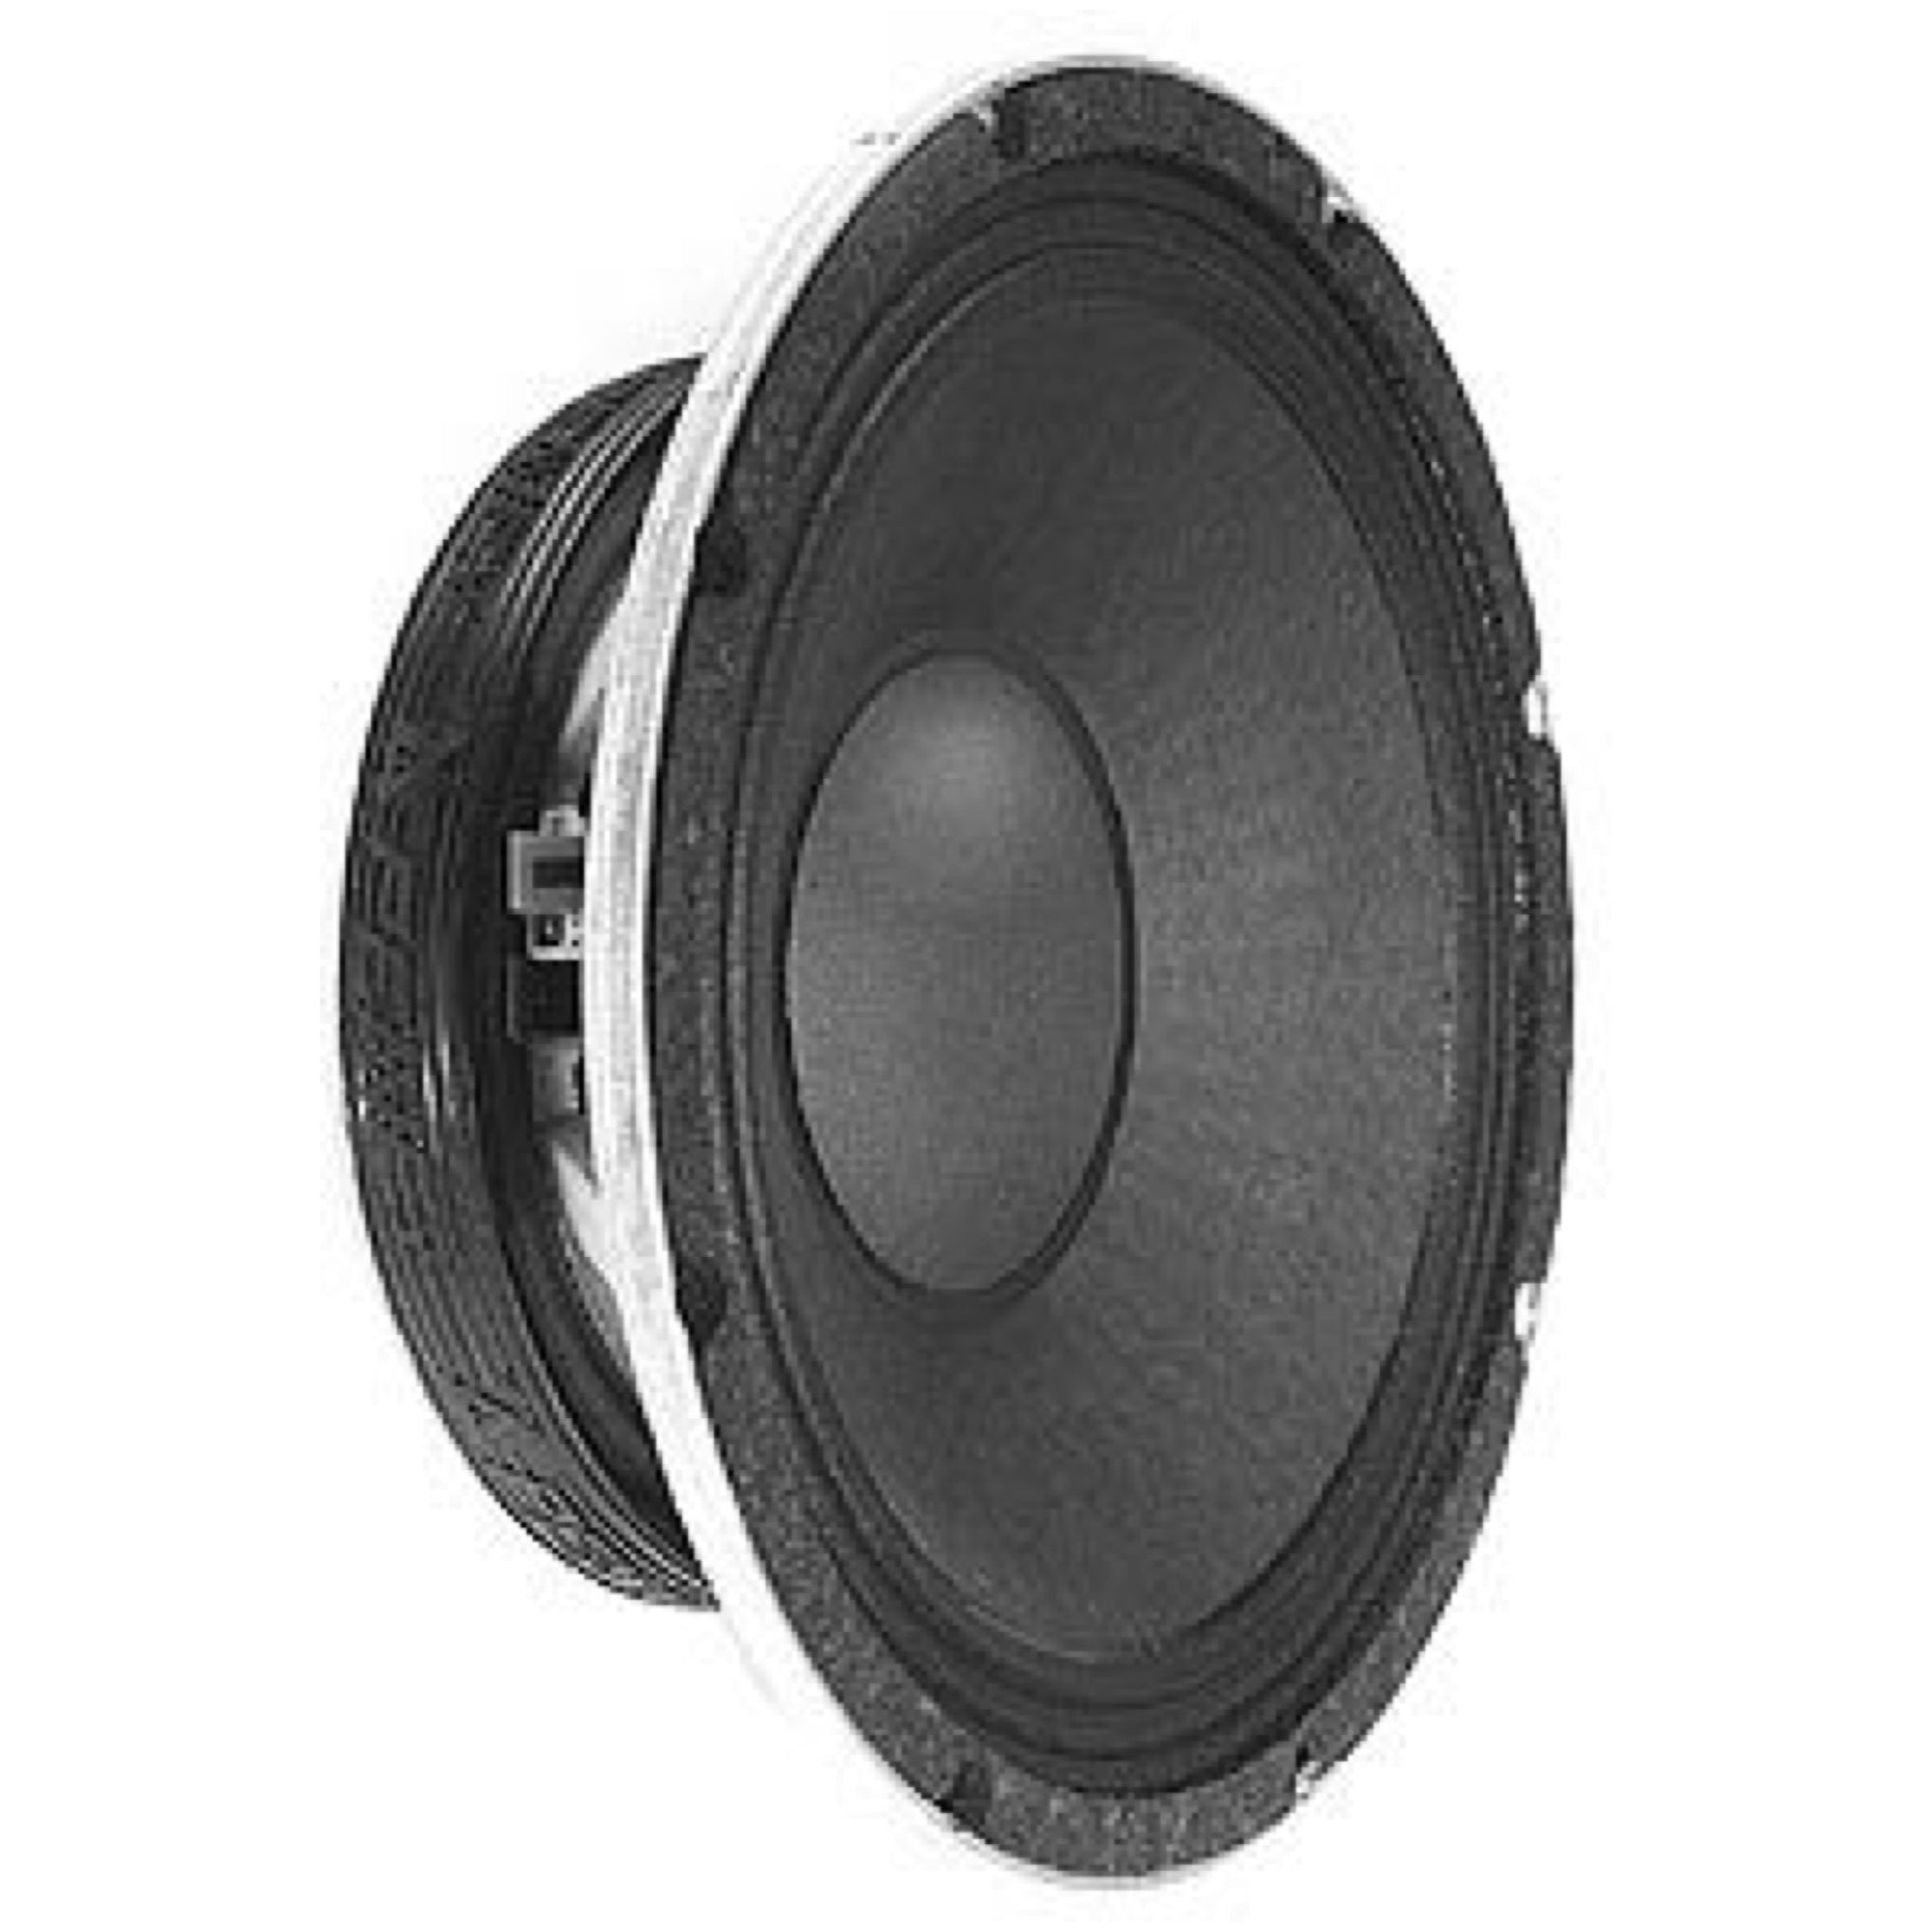 Peavey 1201 LT BW Black Widow Speaker (12 Inch), 8 Ohms